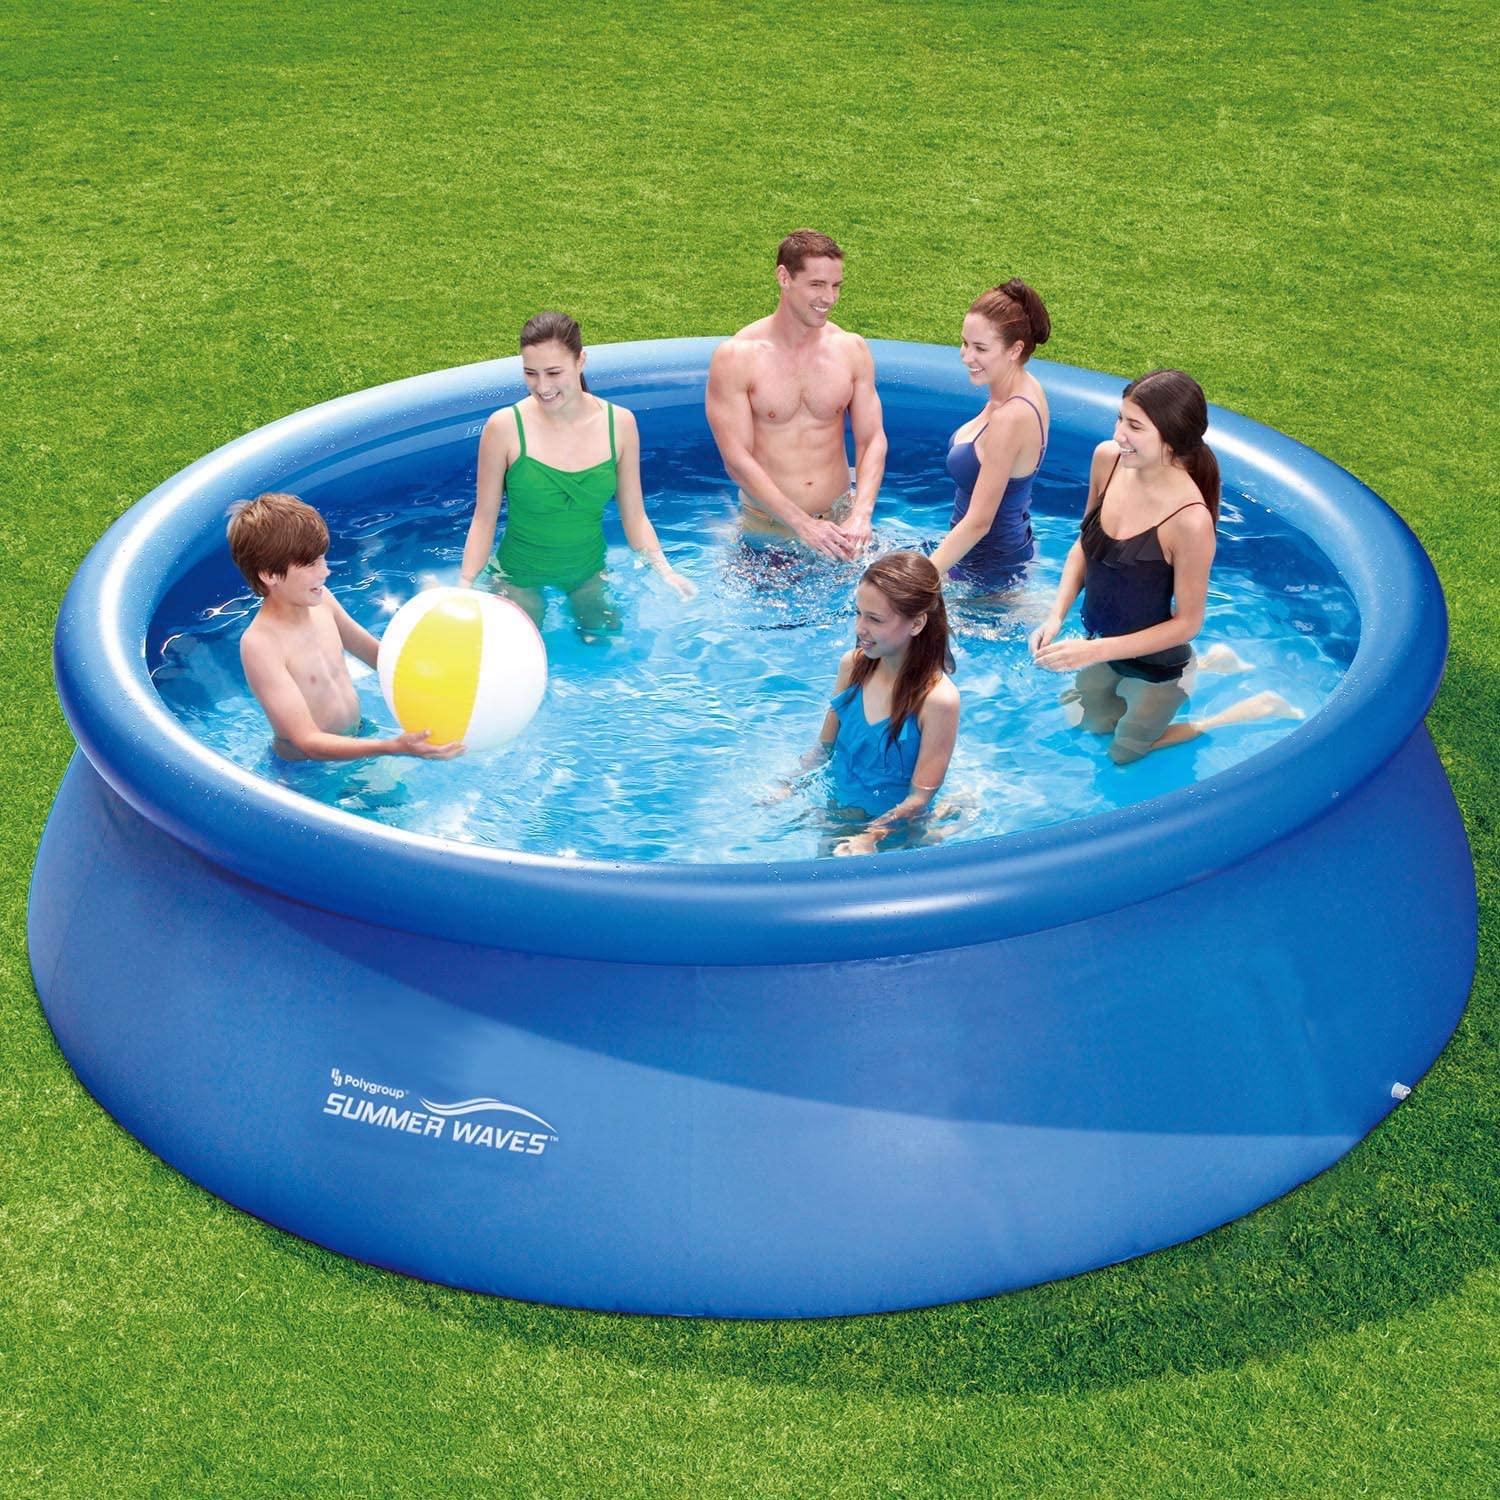 Summer Waves Fast Set Quick Up Piscina 366 x 91 cm swimming pool Familias Piscina: Amazon.es: Jardín